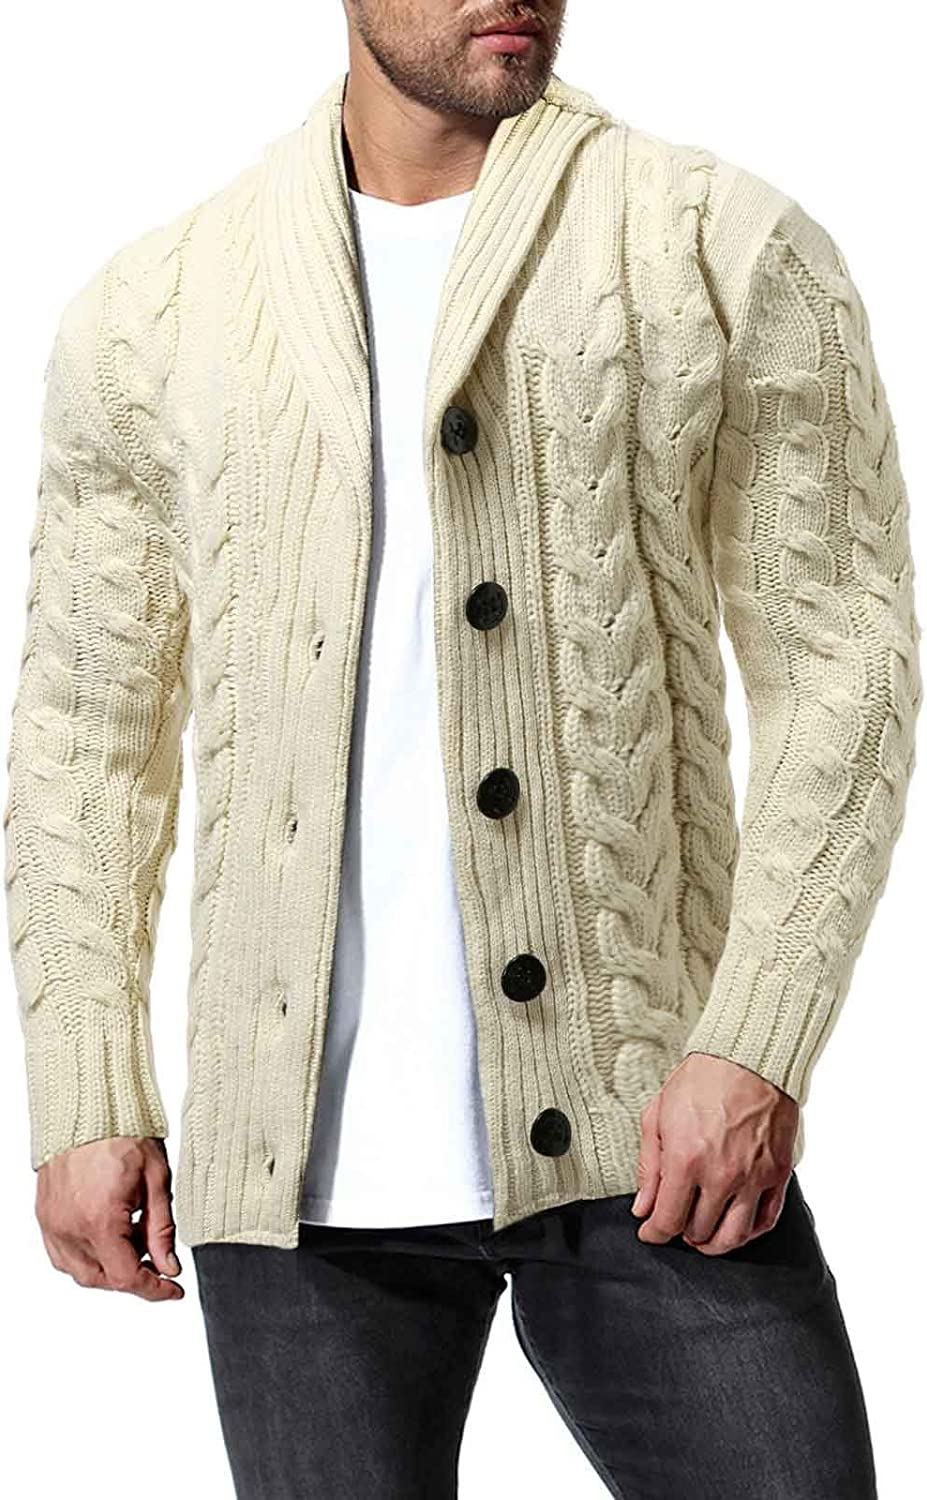 ZSBAYU Men's Fashion Cable-Knit Cardigan Sweaters Shawl Collar Casual Long Sleeve Jackets Button Sweaters